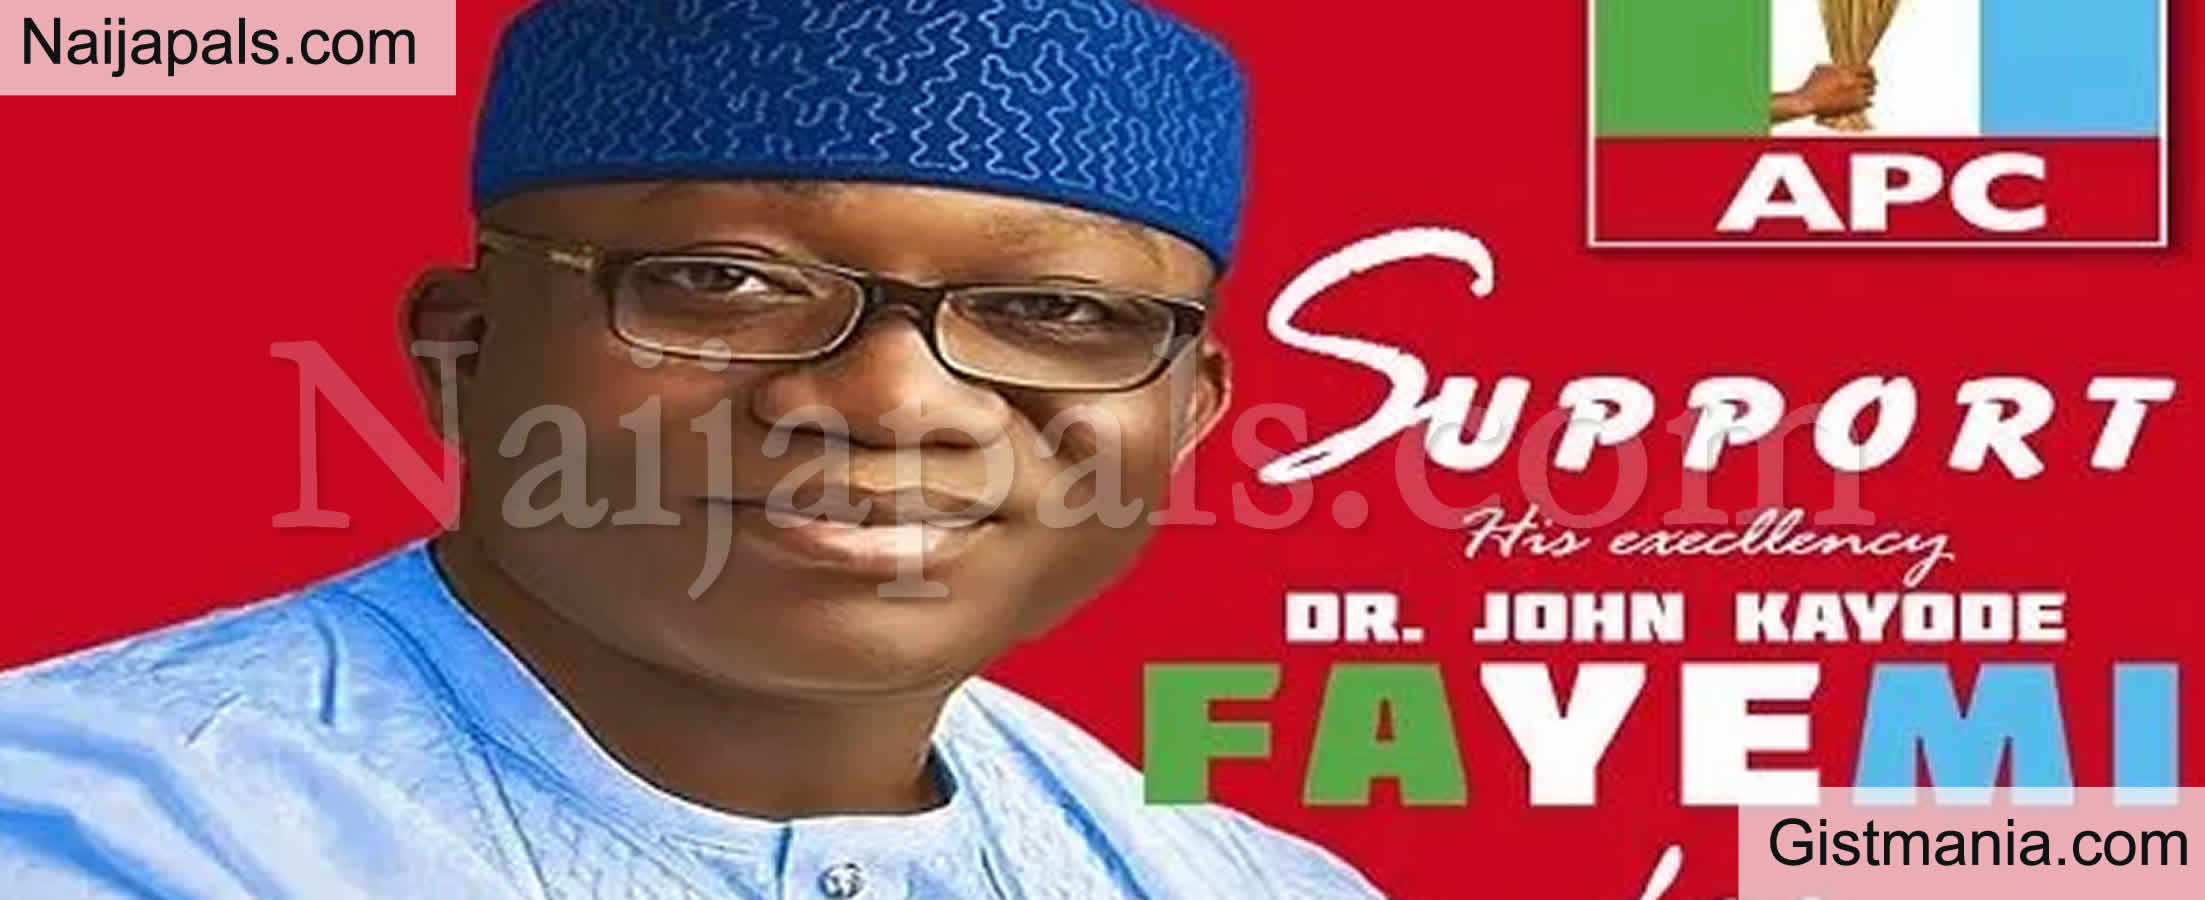 <img alt='.' class='lazyload' data-src='https://img.gistmania.com/emot/news.gif' /> BREAKING! <b>APC Suspends Governor Fayemi of Ekiti State</b>, List His Anti-Party Activities